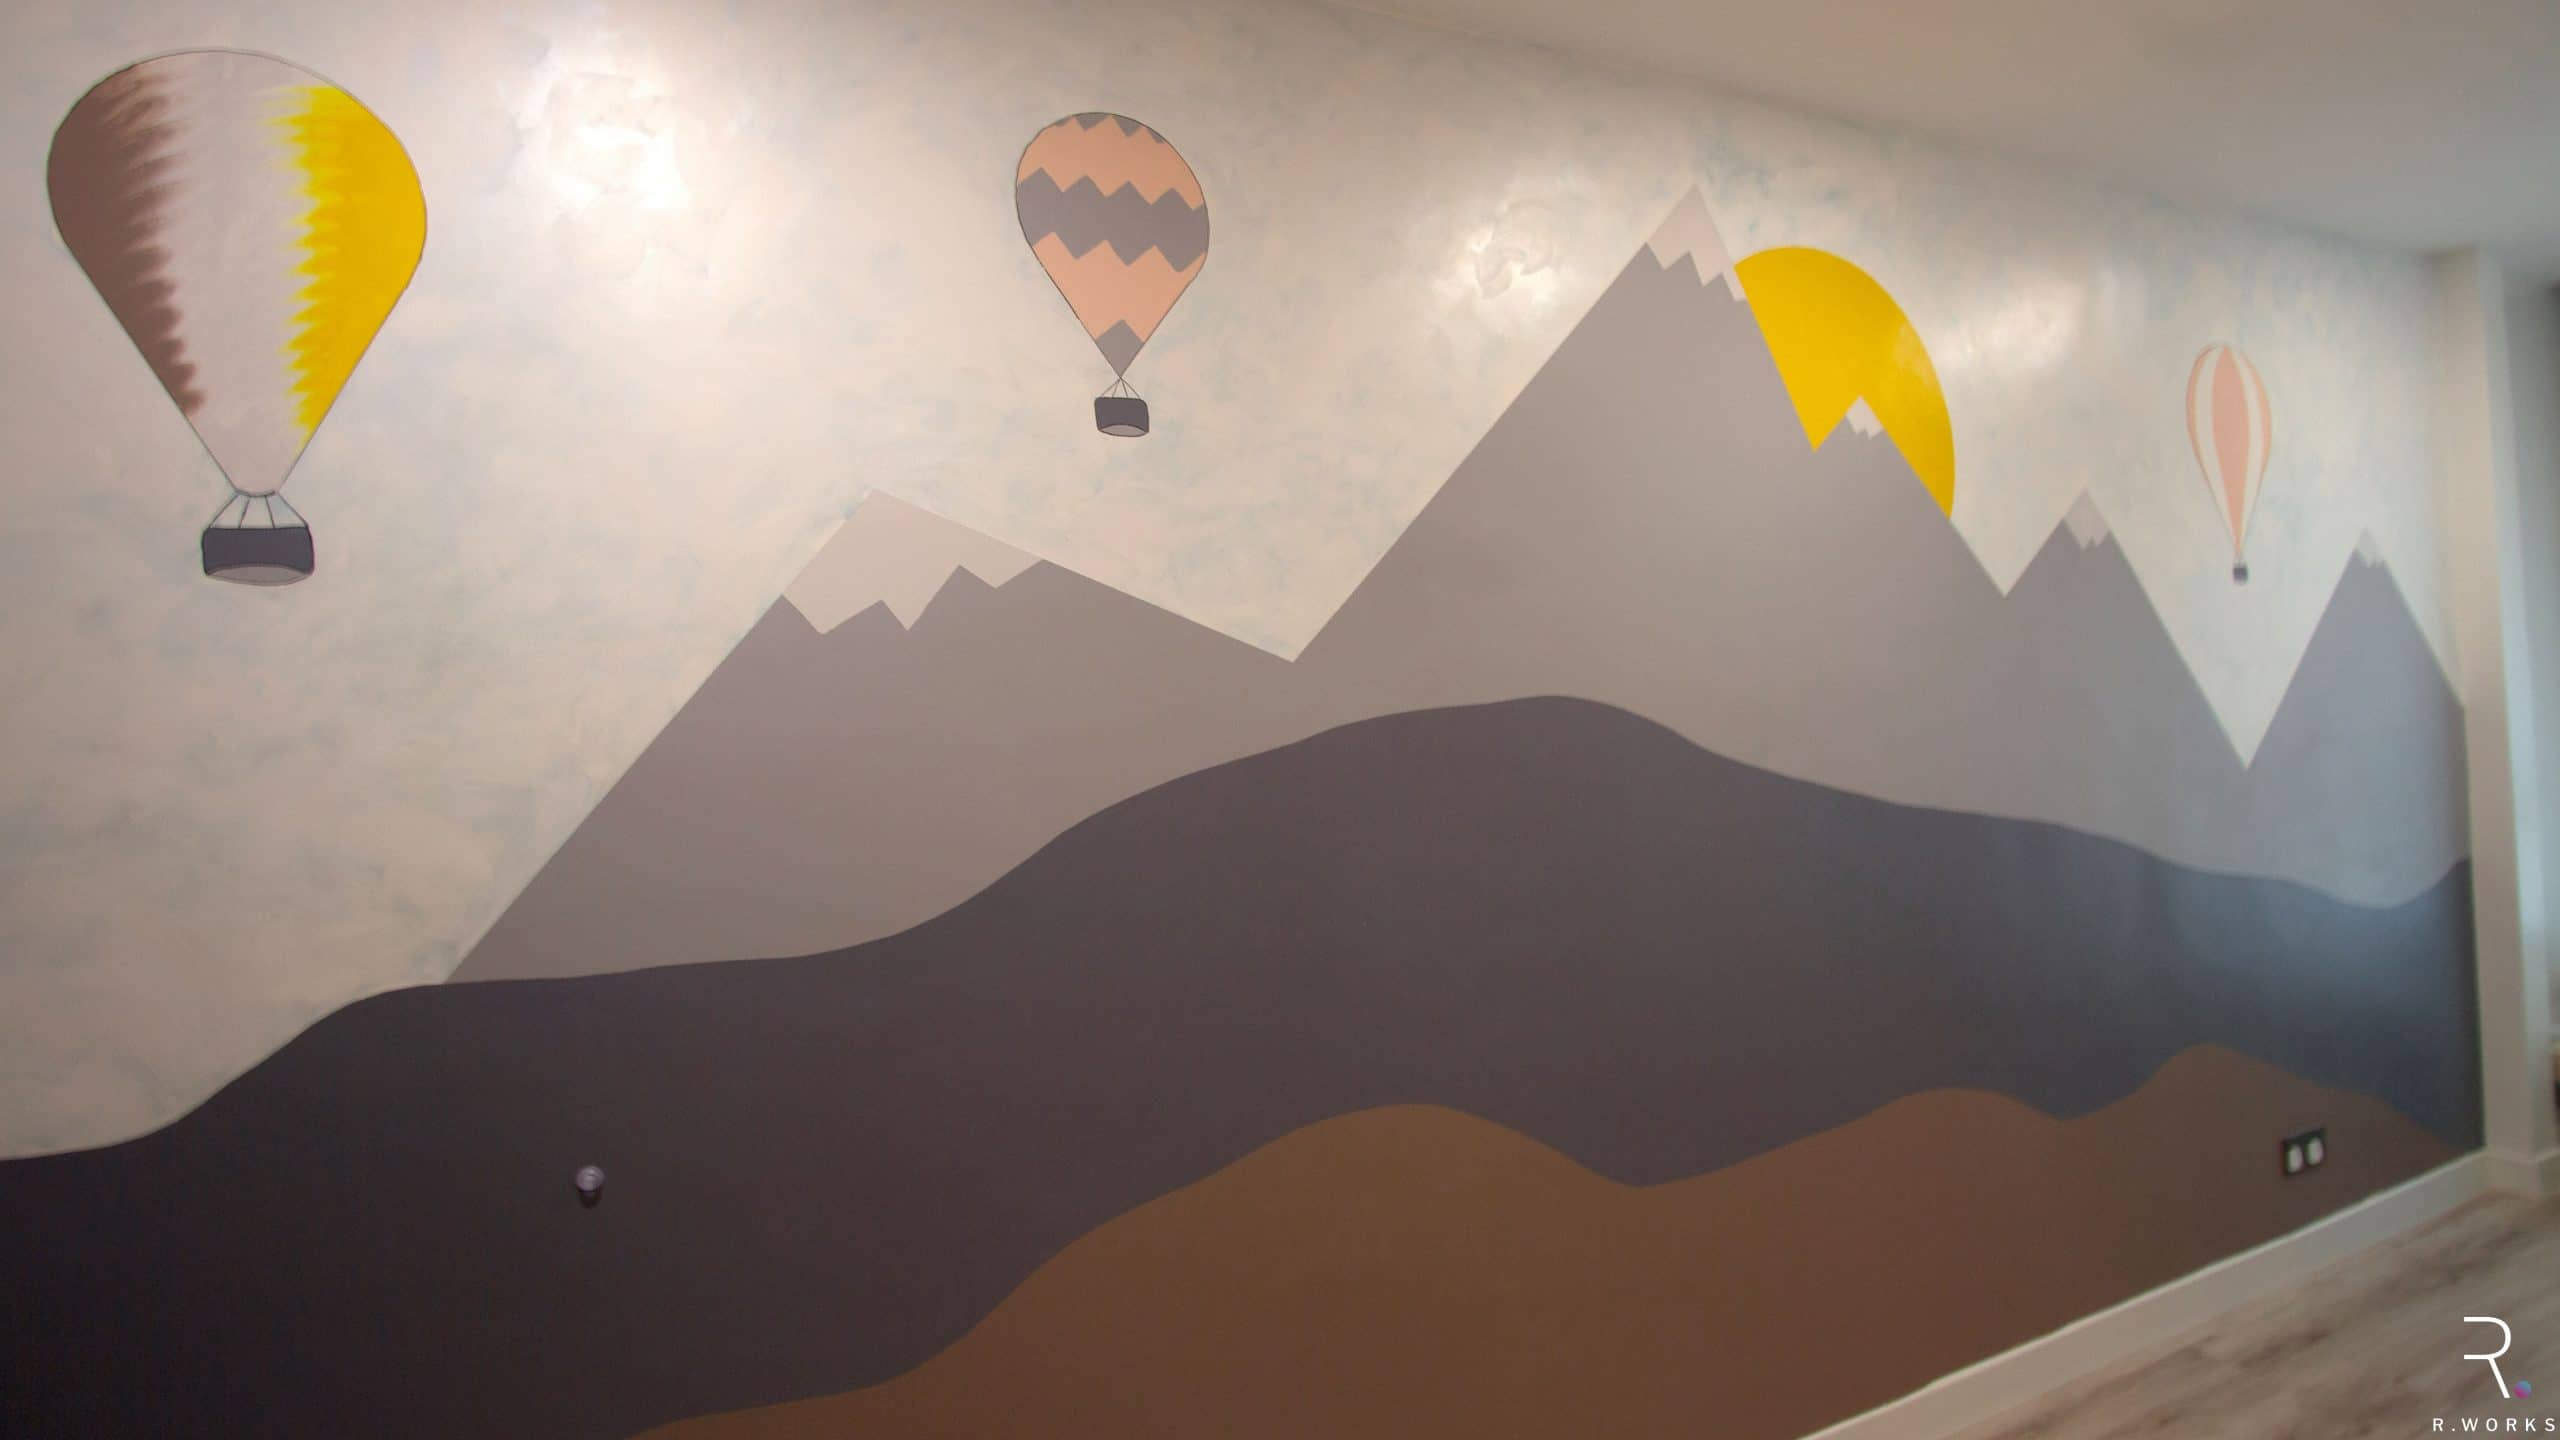 Custom painted mural in kid's bedroom child-friendly townhouse interior design